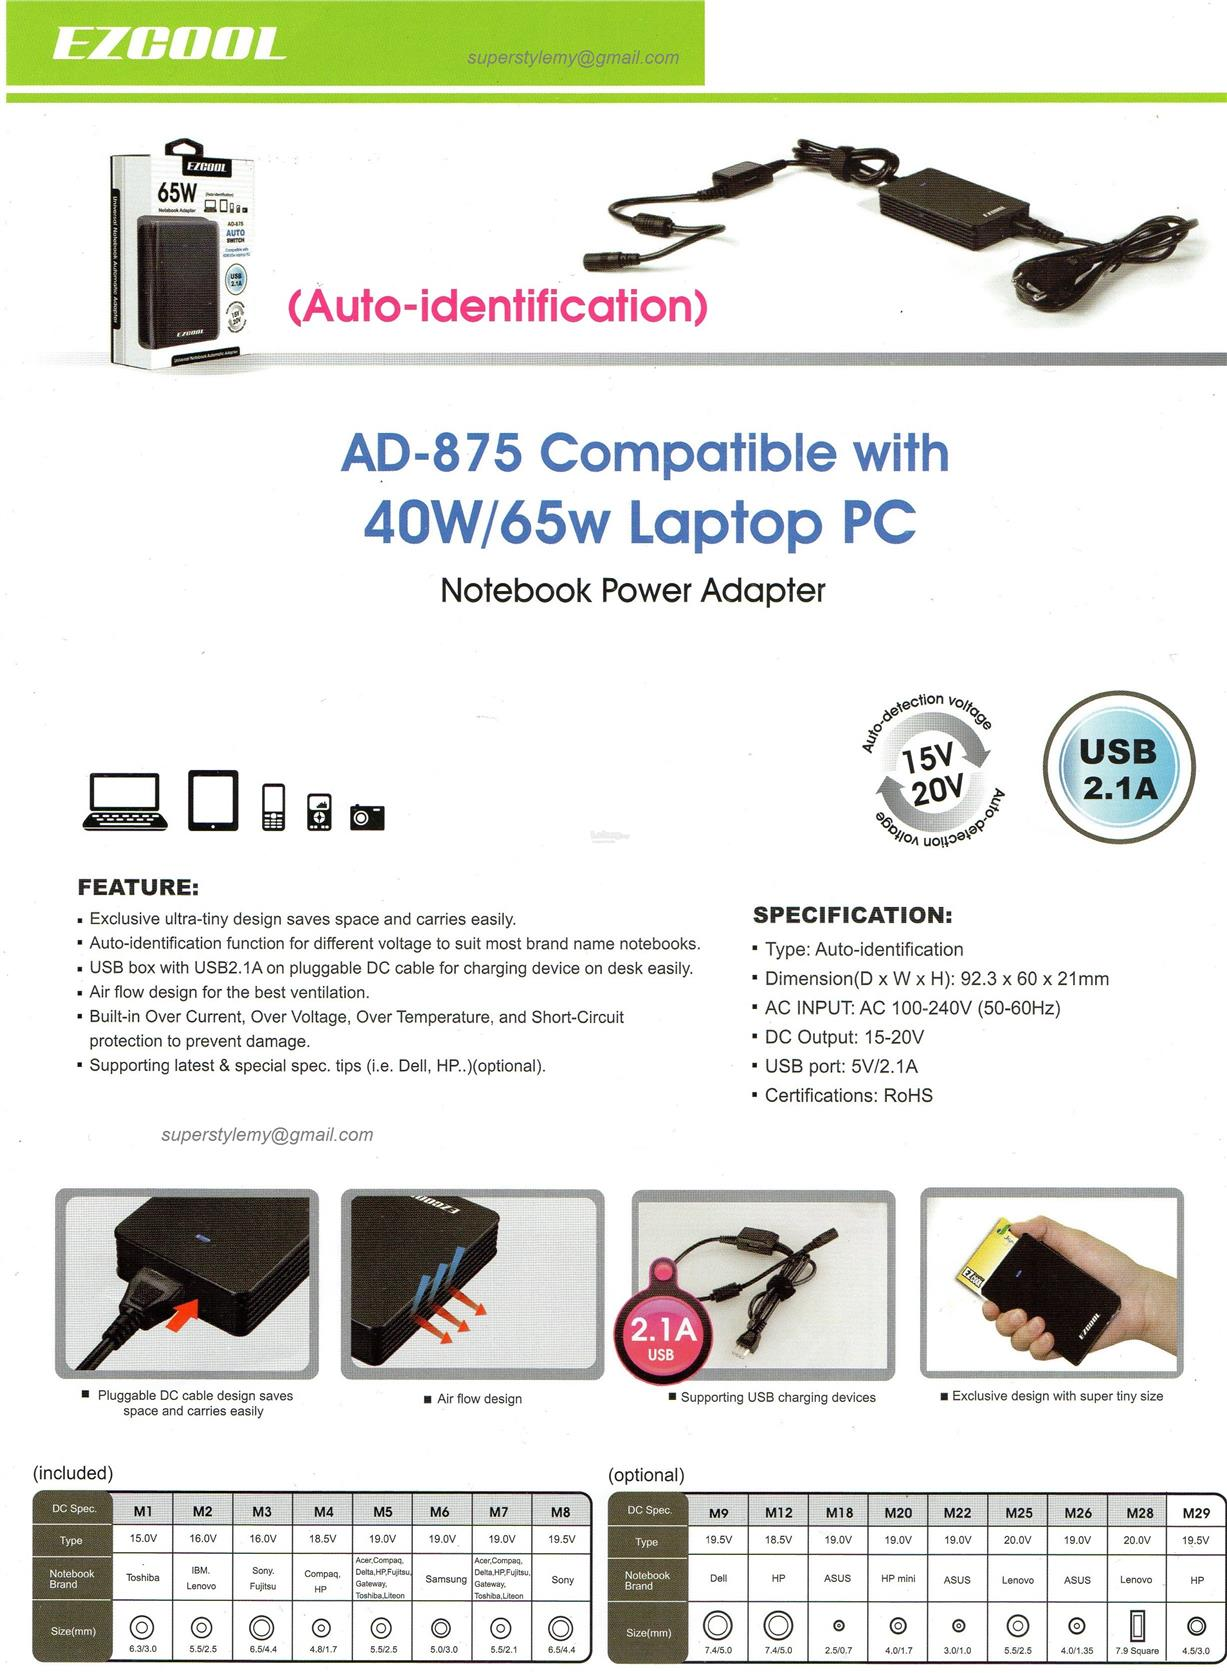 EZCOOL Notebook Power Adapter with USB Charger ( AD-875 )